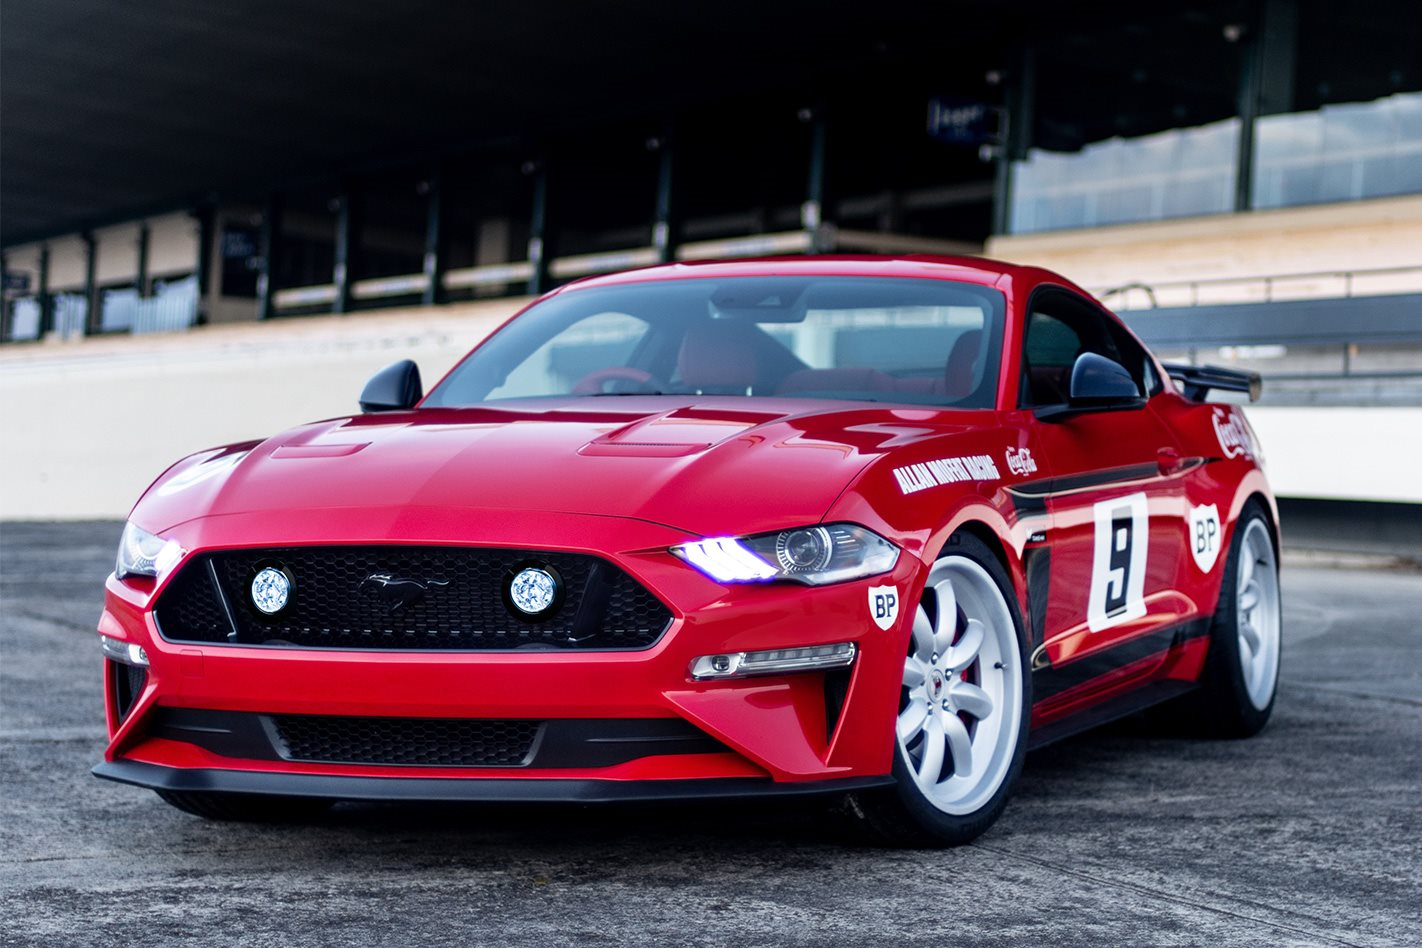 Limited edition Tickford Trans-Am Mustang is a tribute to the Coca-Cola racer